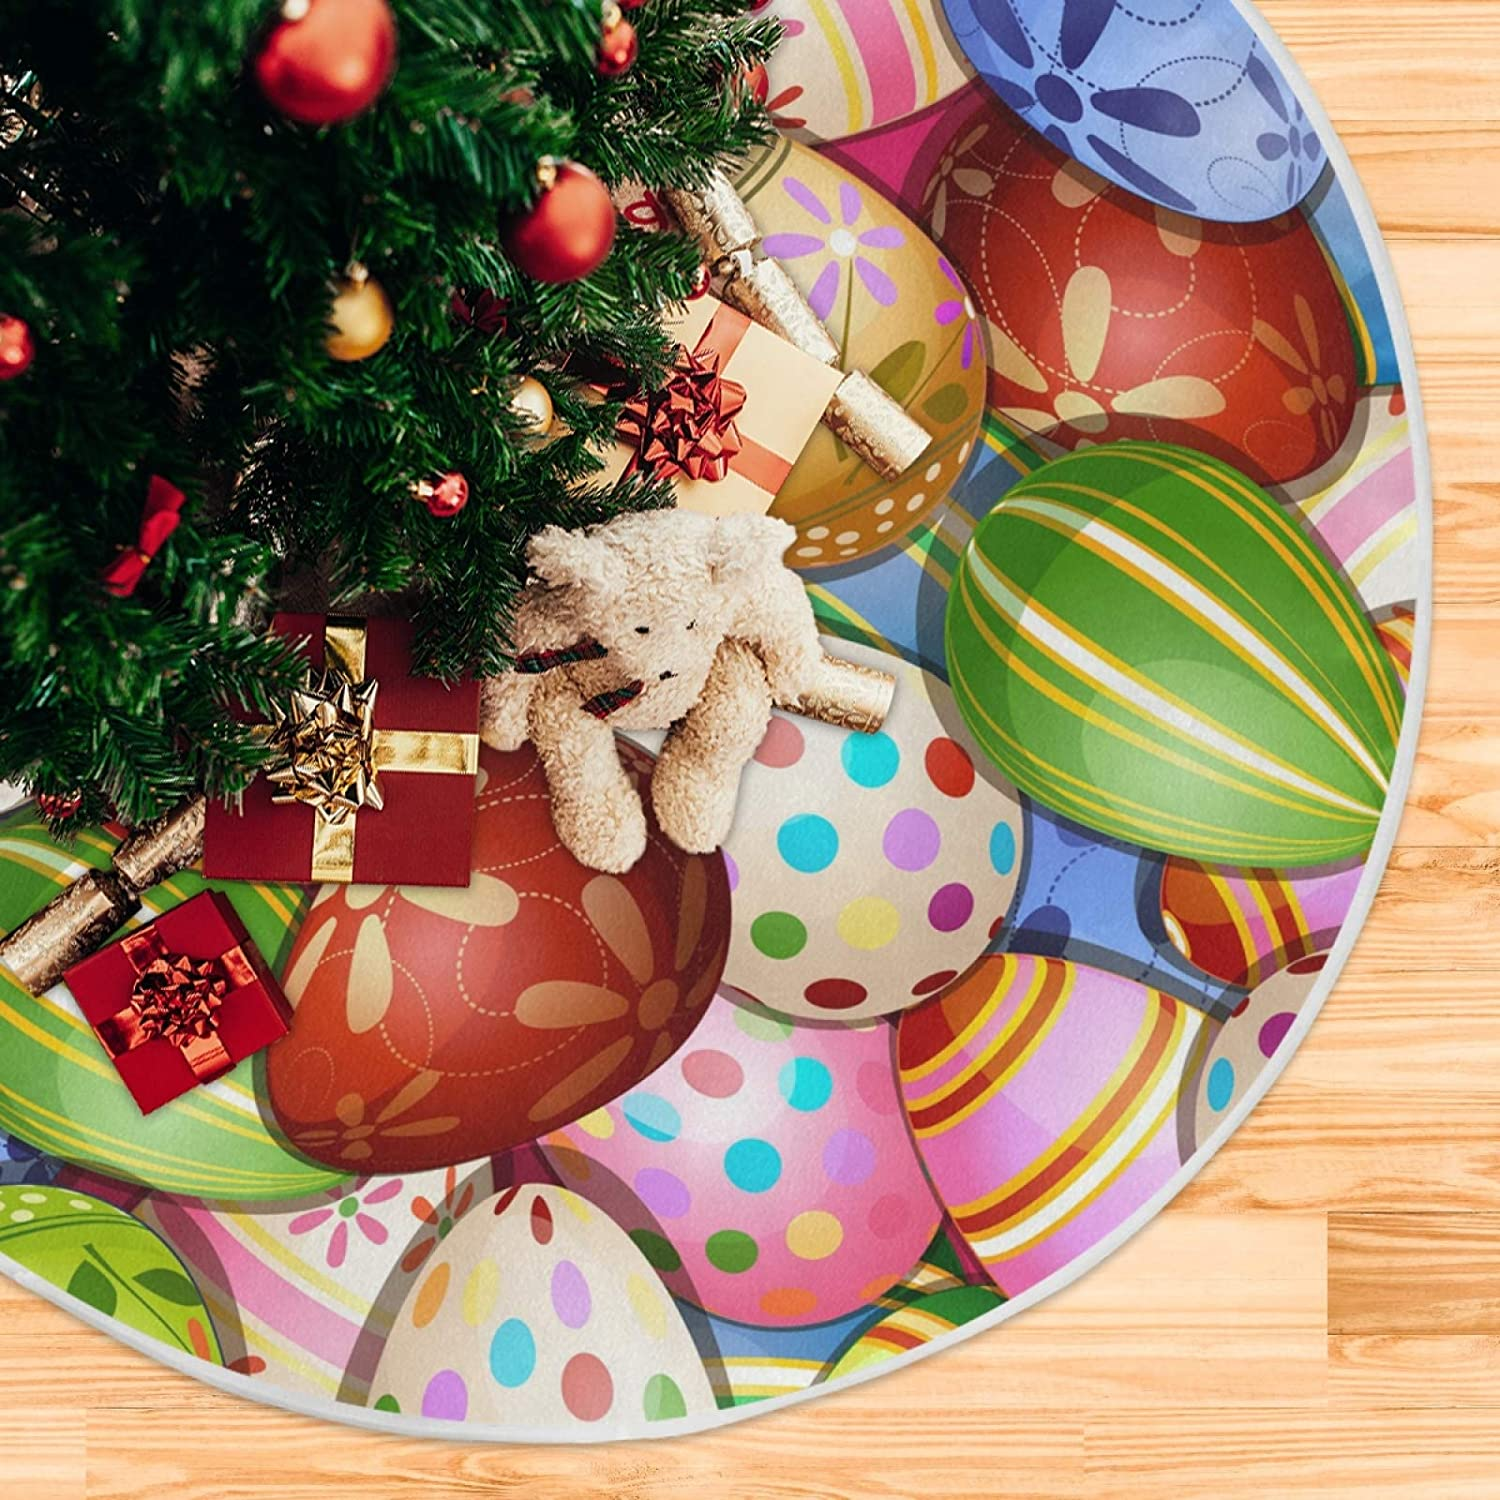 Qilmy Easter Colorful Eggs Tree Skirt Winter New Year House Decorative Supplies for Holiday Office Gift Tree Base Cover Mat Decorations 36inch